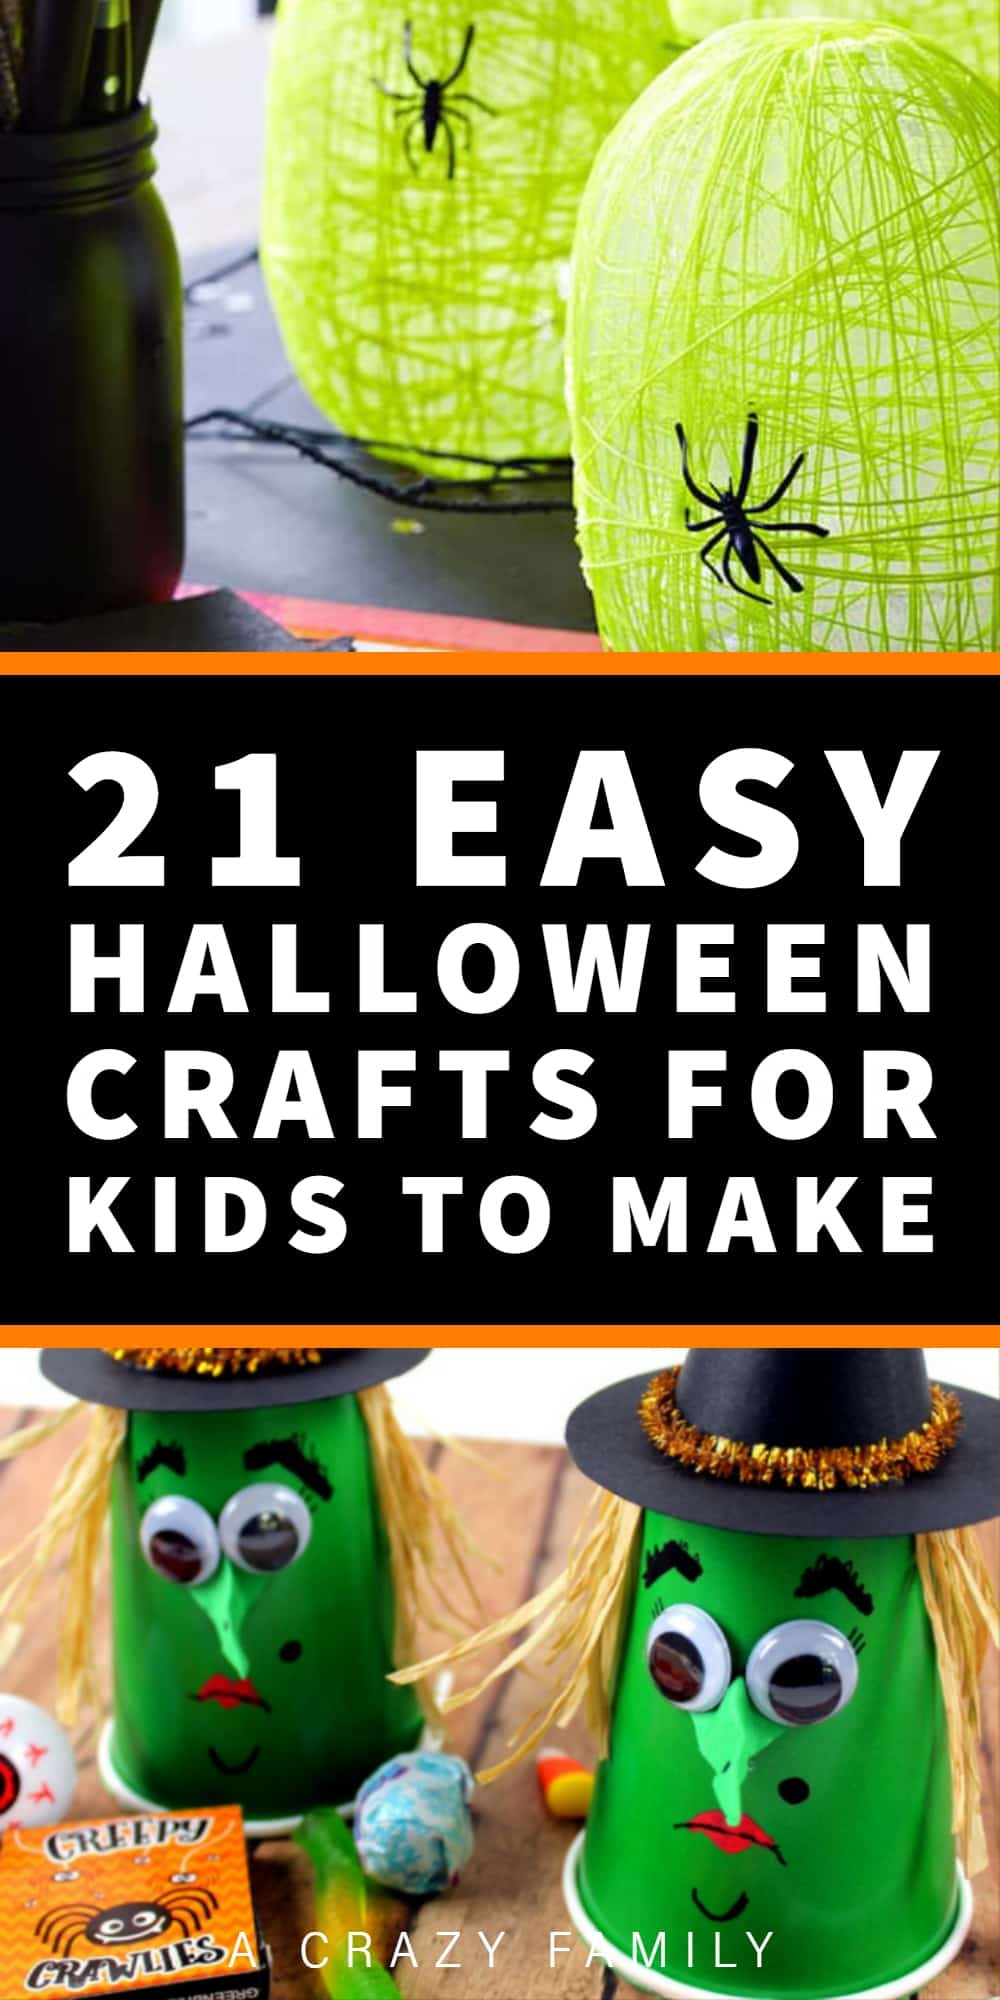 21 Easy Halloween Crafts for Kids to Make